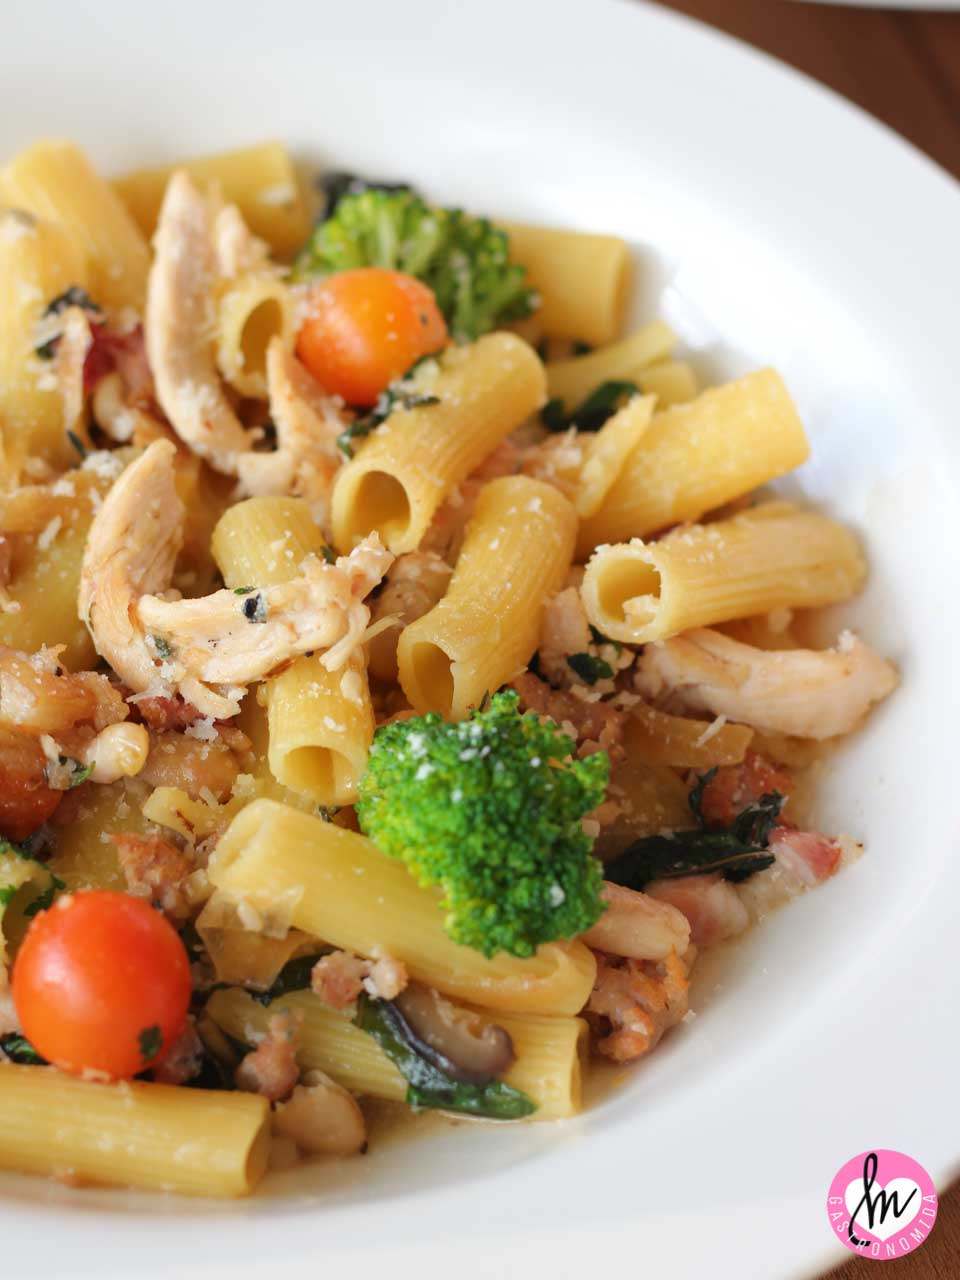 Al dente rigatoni pasta, Italian sausage, chicken, pancetta, cannelini beans, vegetables, and parmesan butter